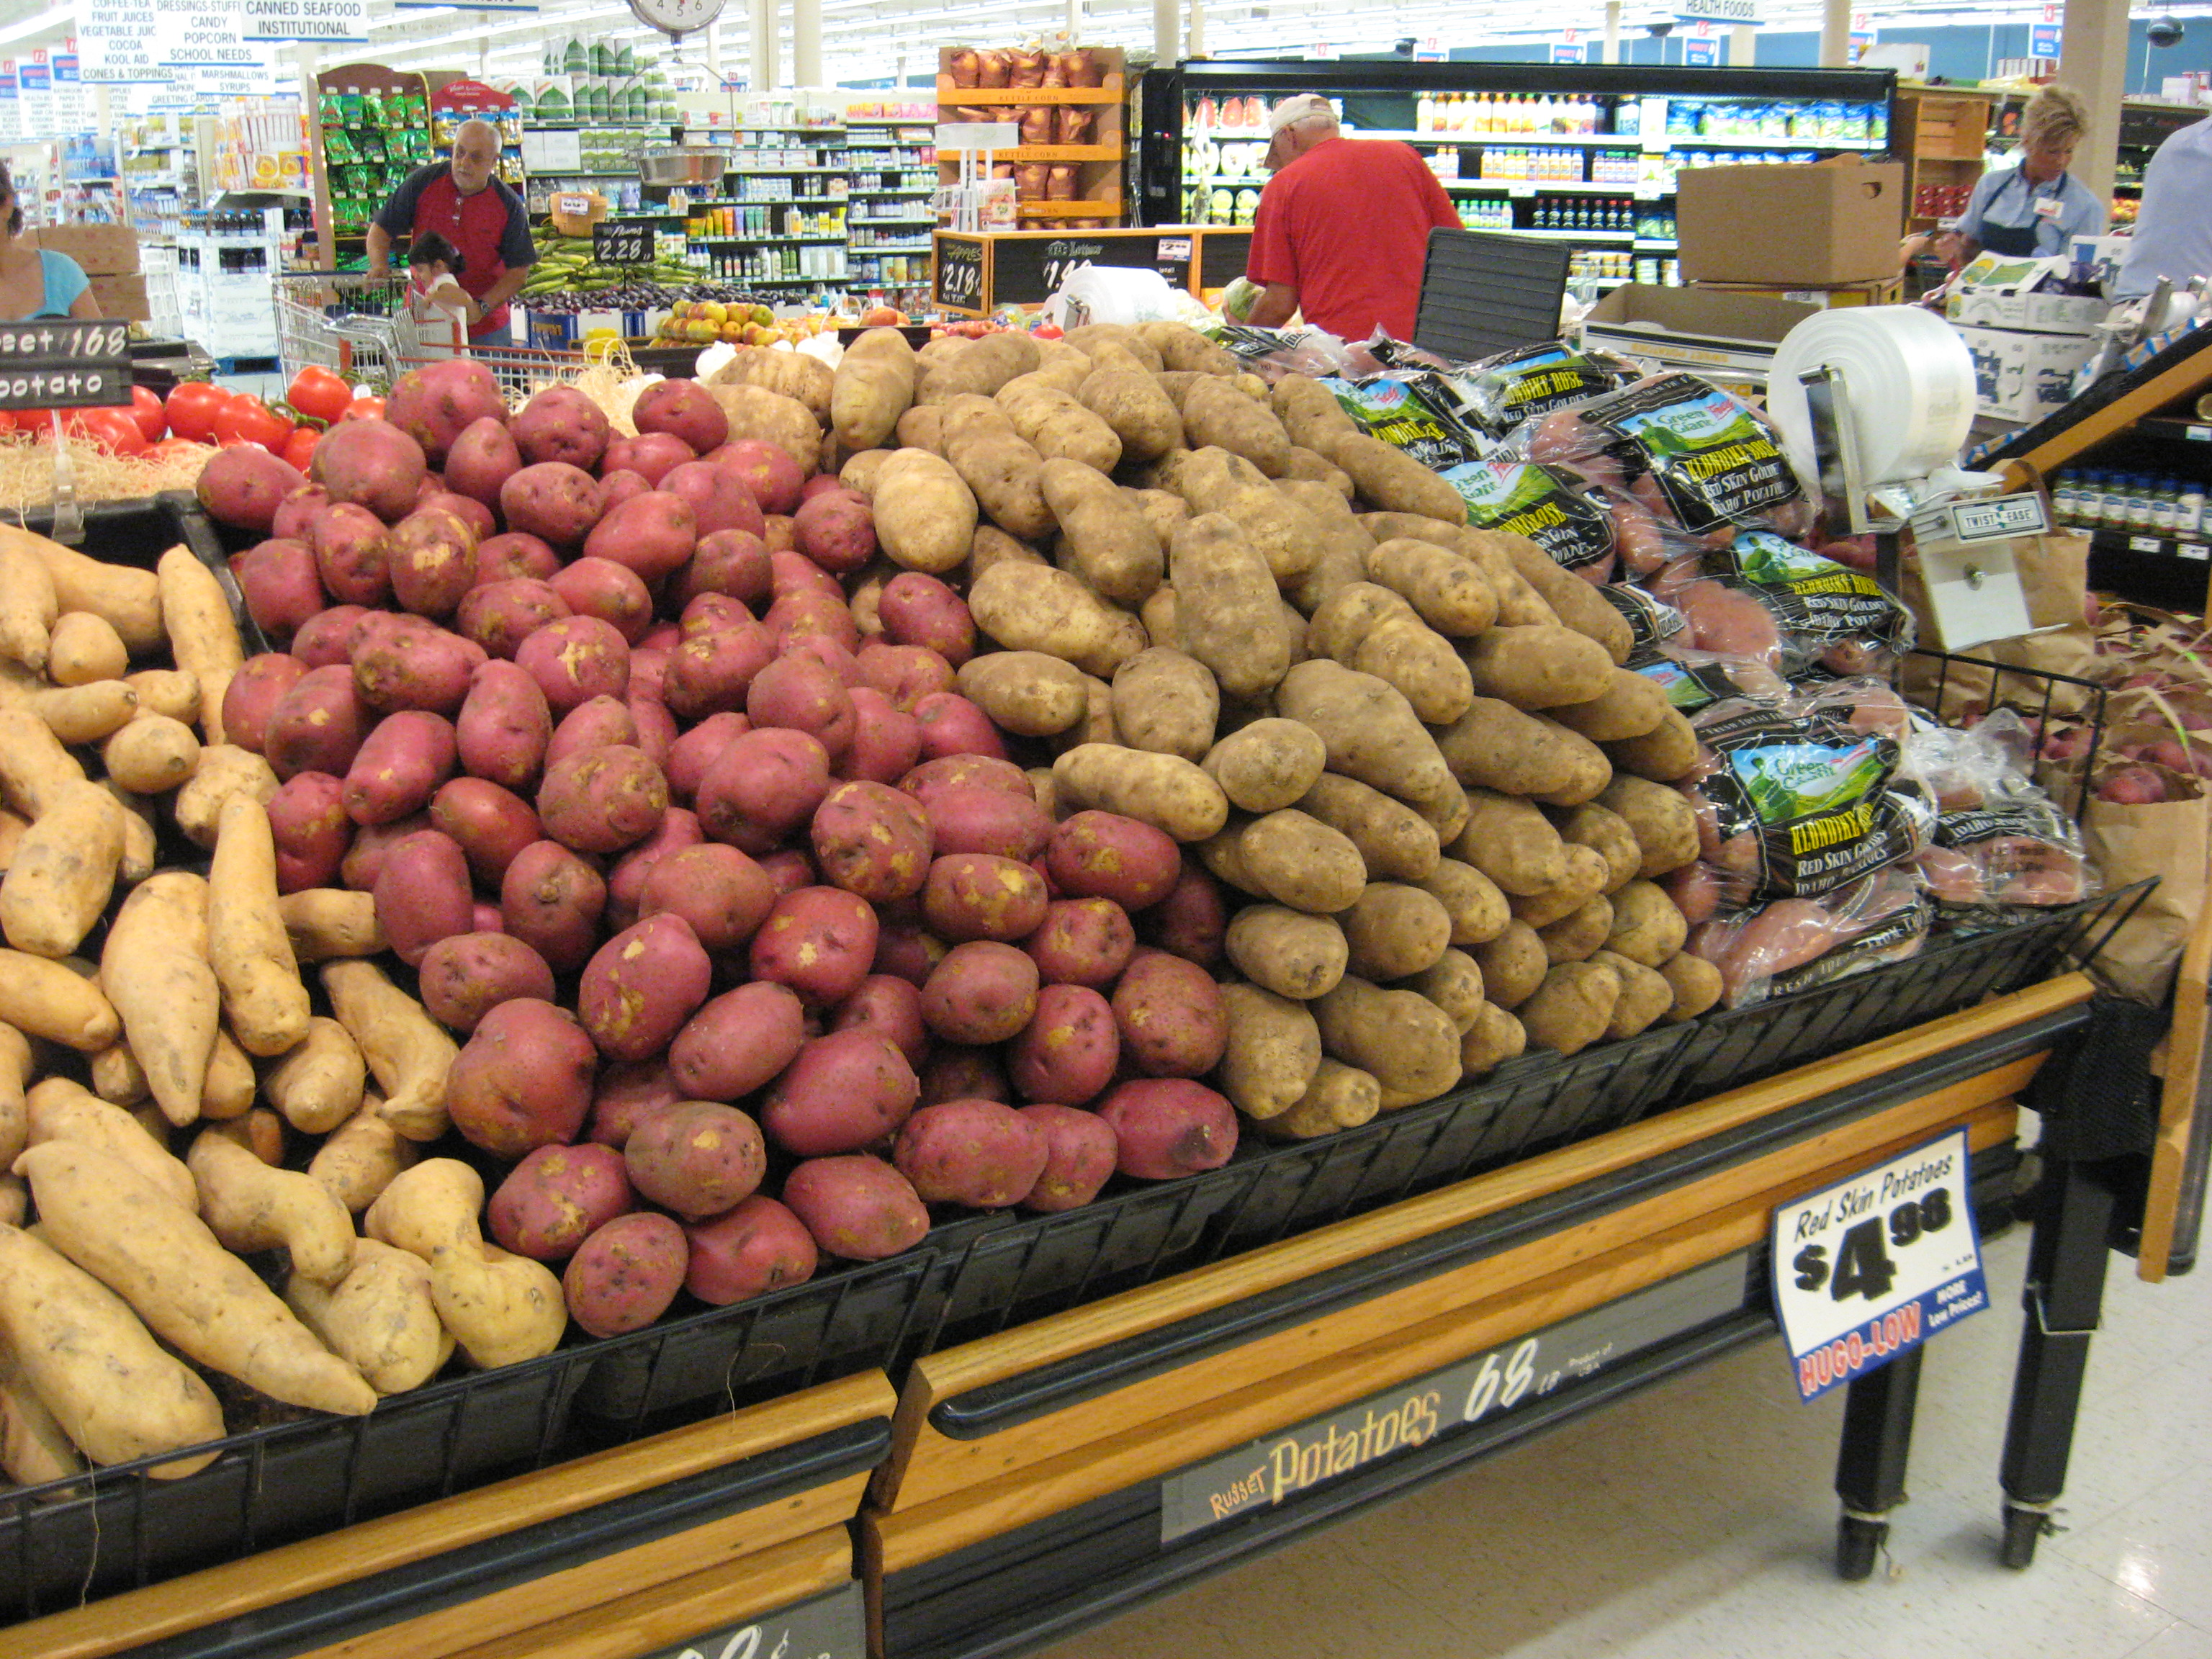 New Study Focuses on Nutritional Value of Potatoes